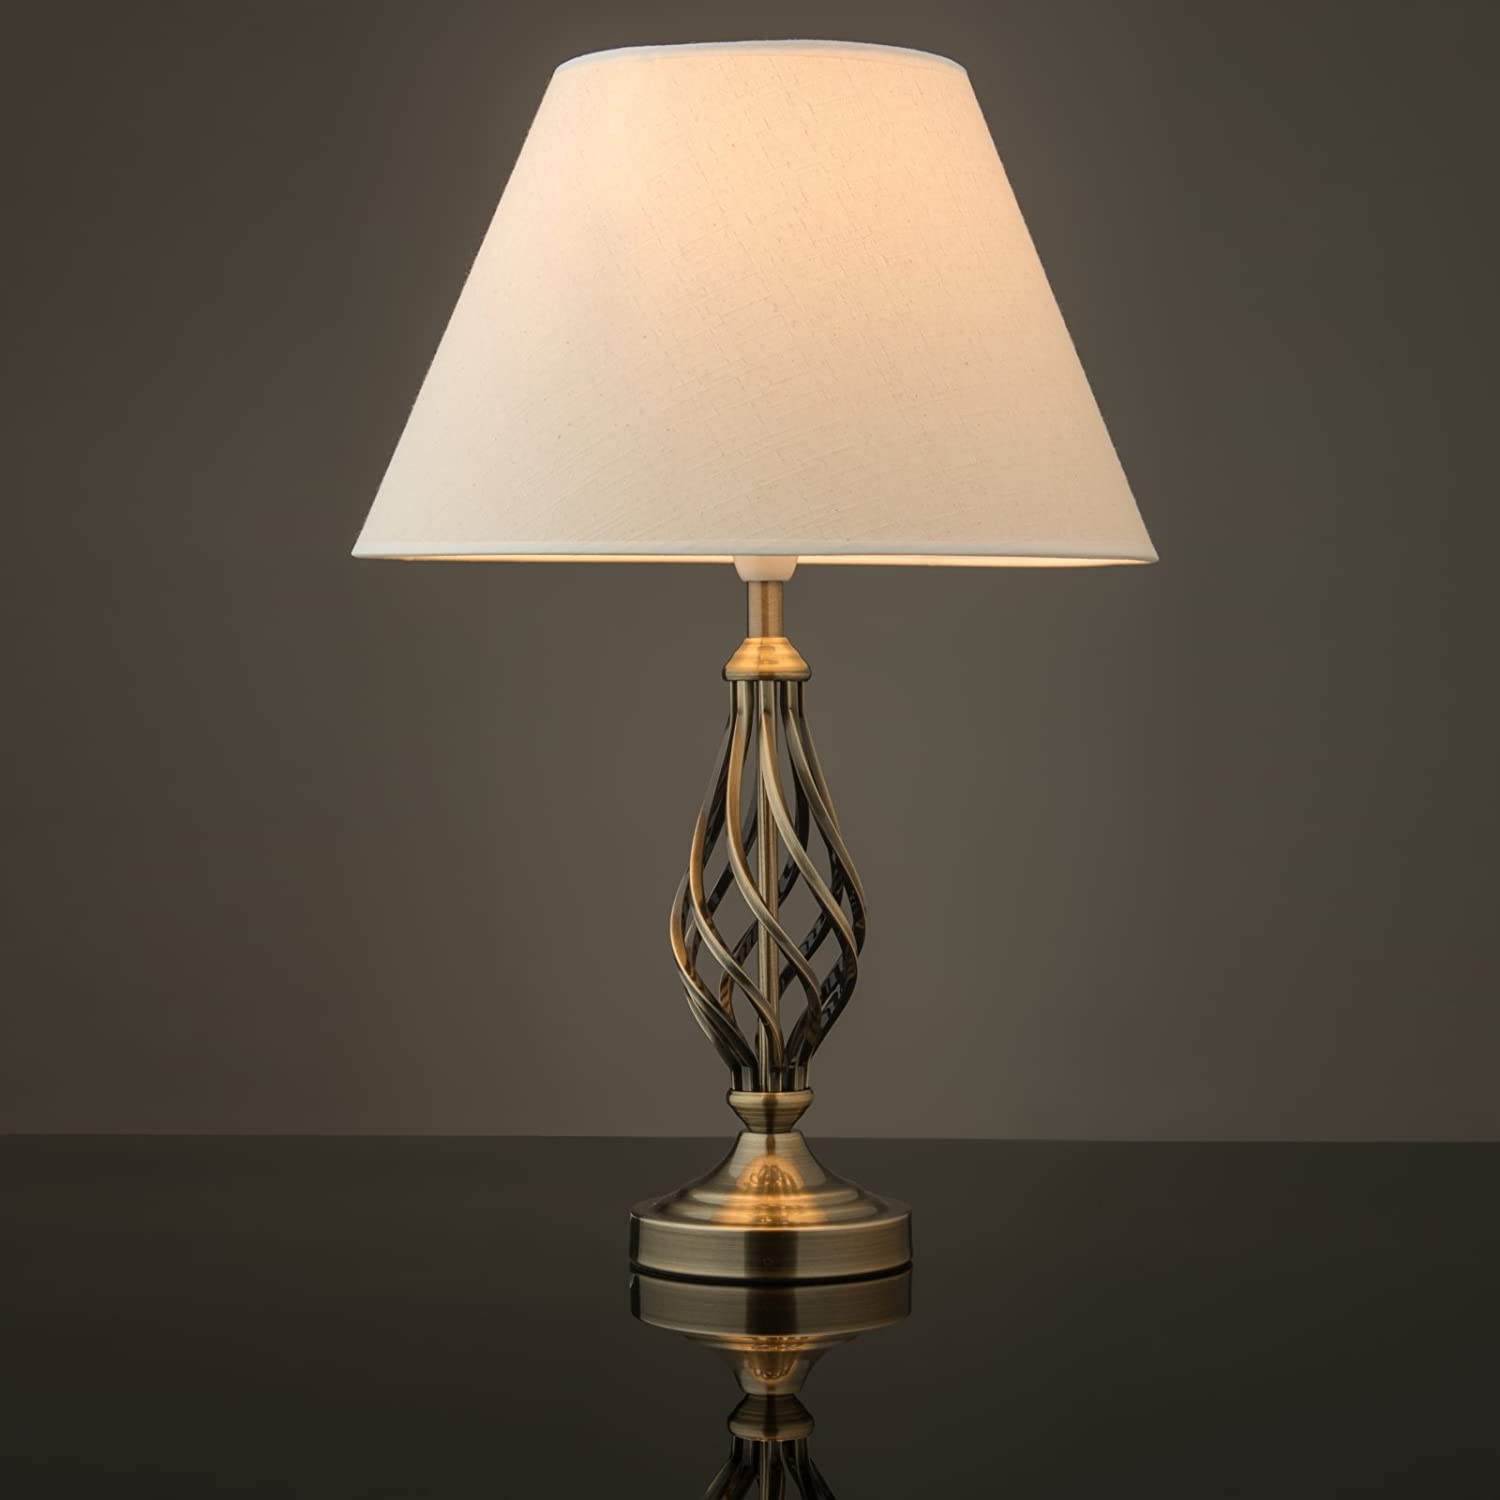 Kingswood Barley Twist Traditional Table Lamp - Antique Brass ...